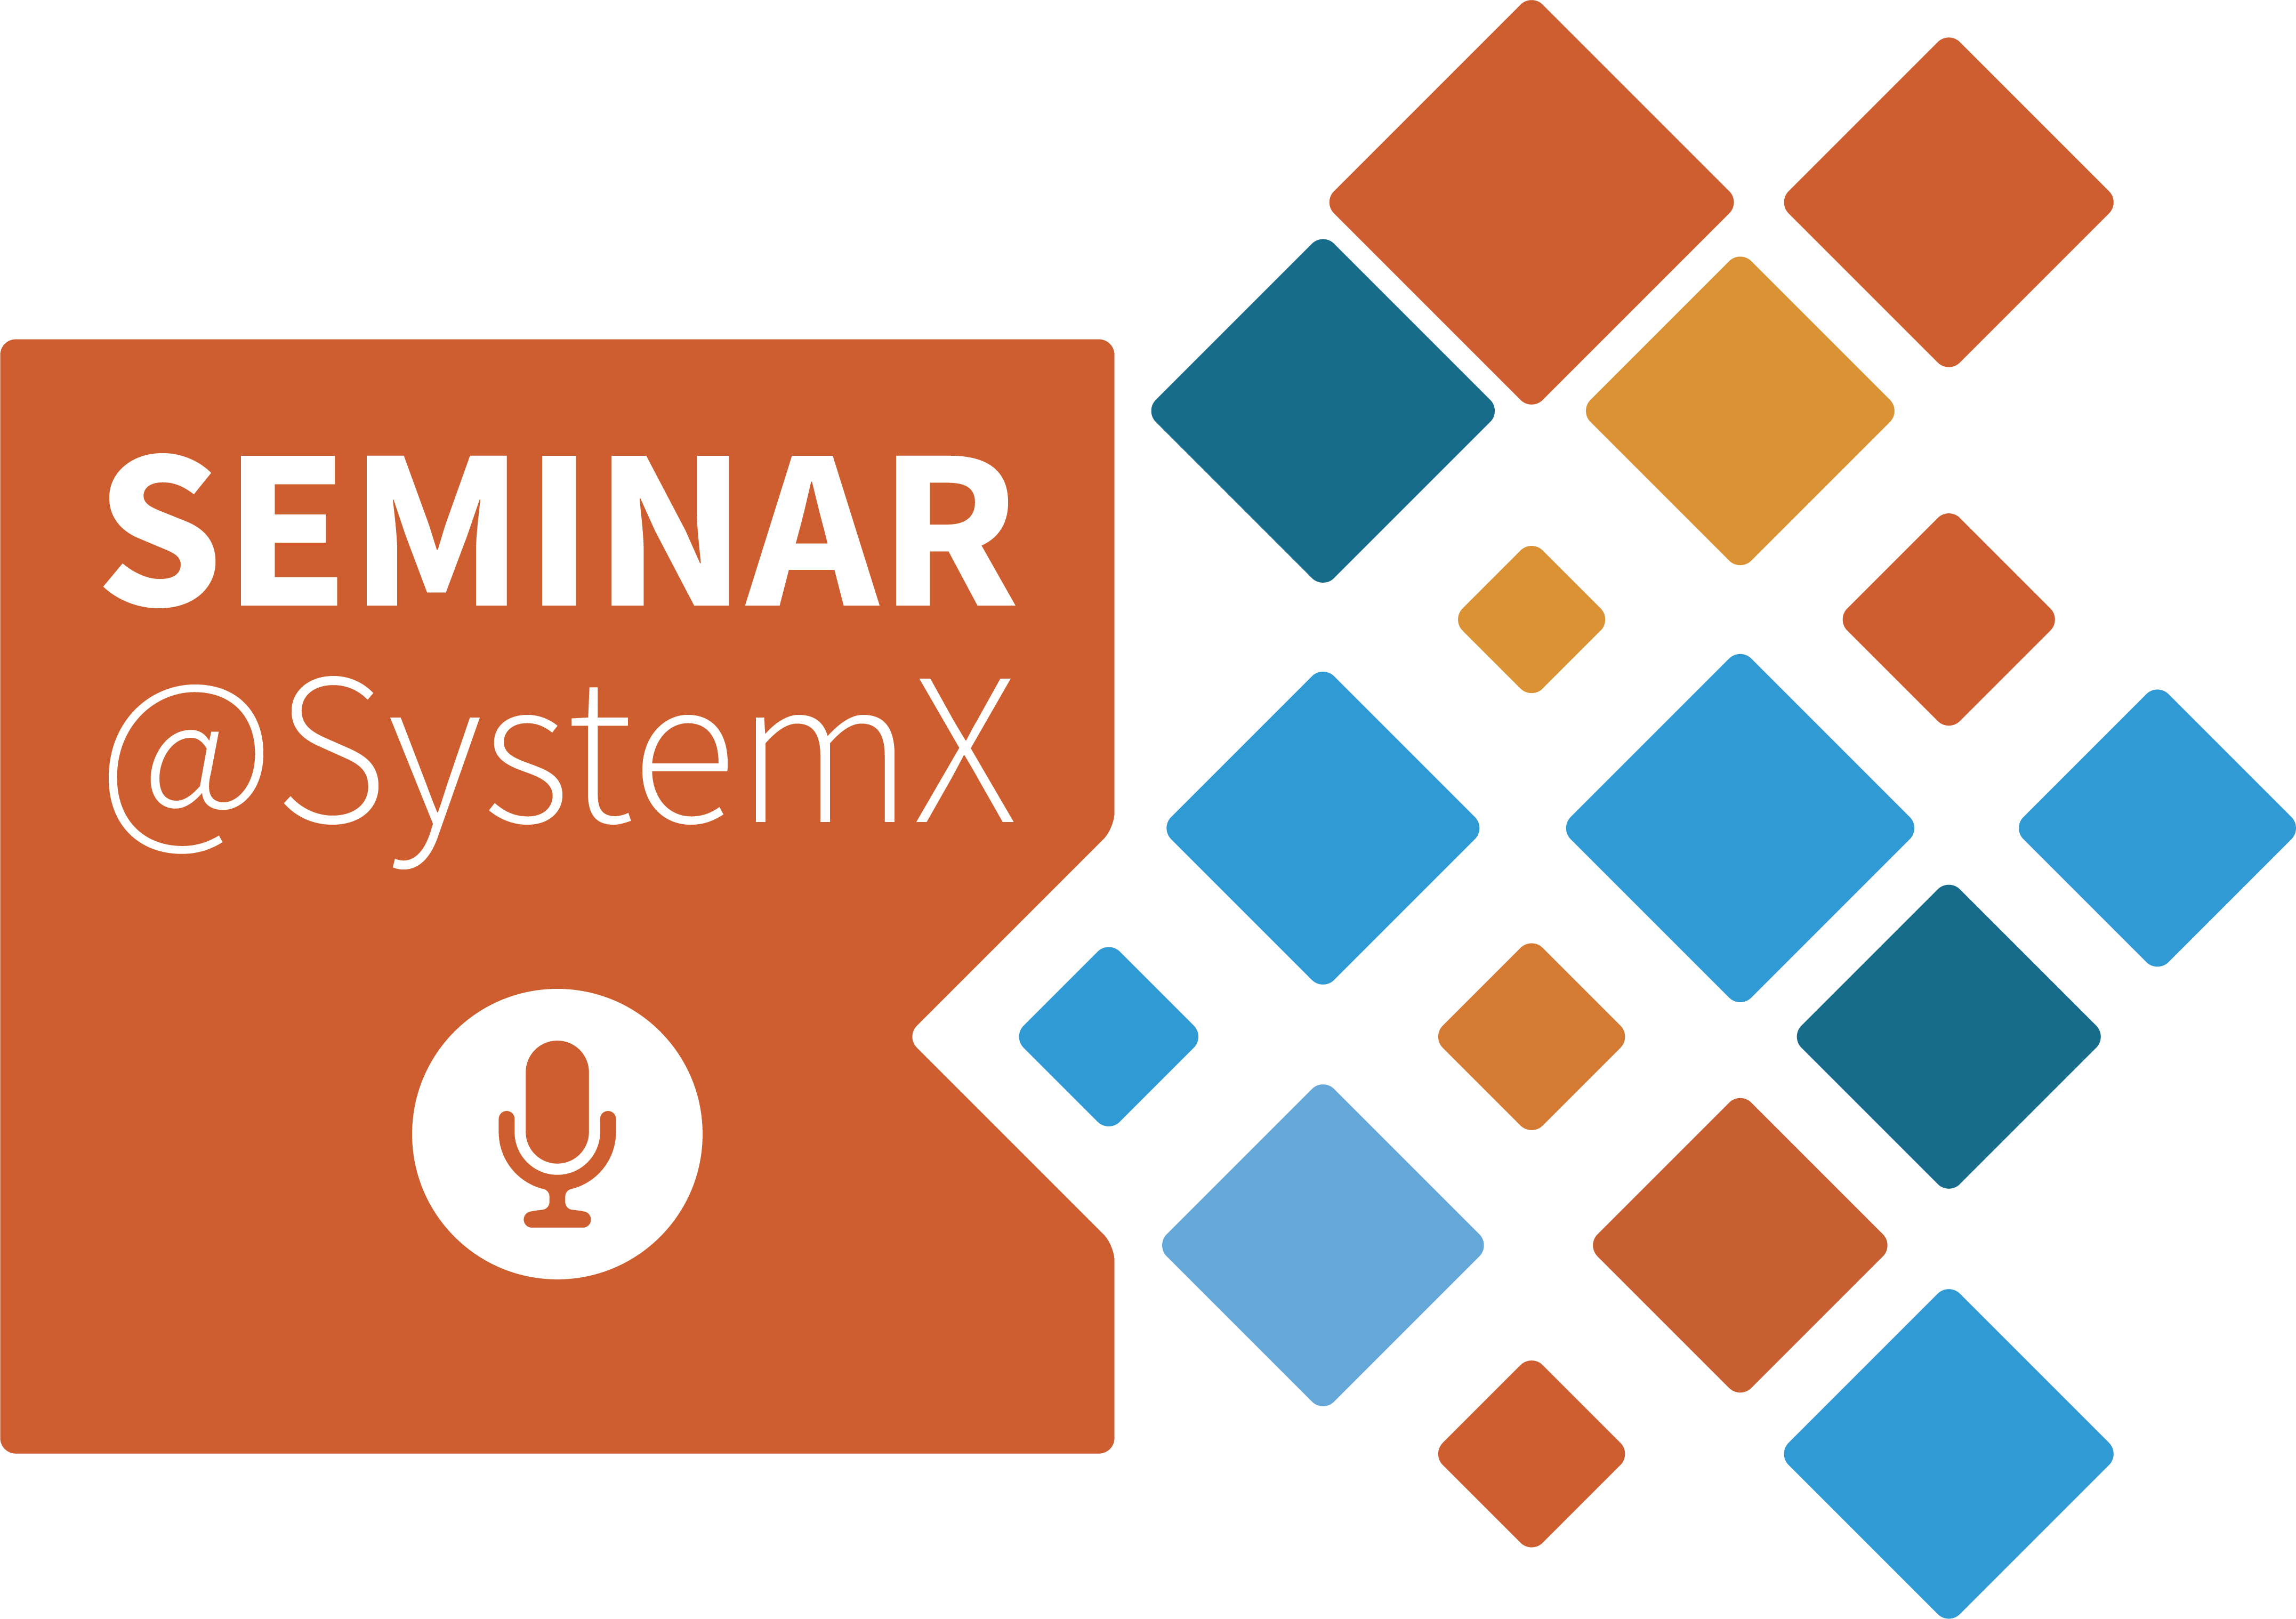 Mohamed Ghazel animera un Seminar@SystemX le 16 avril 2021